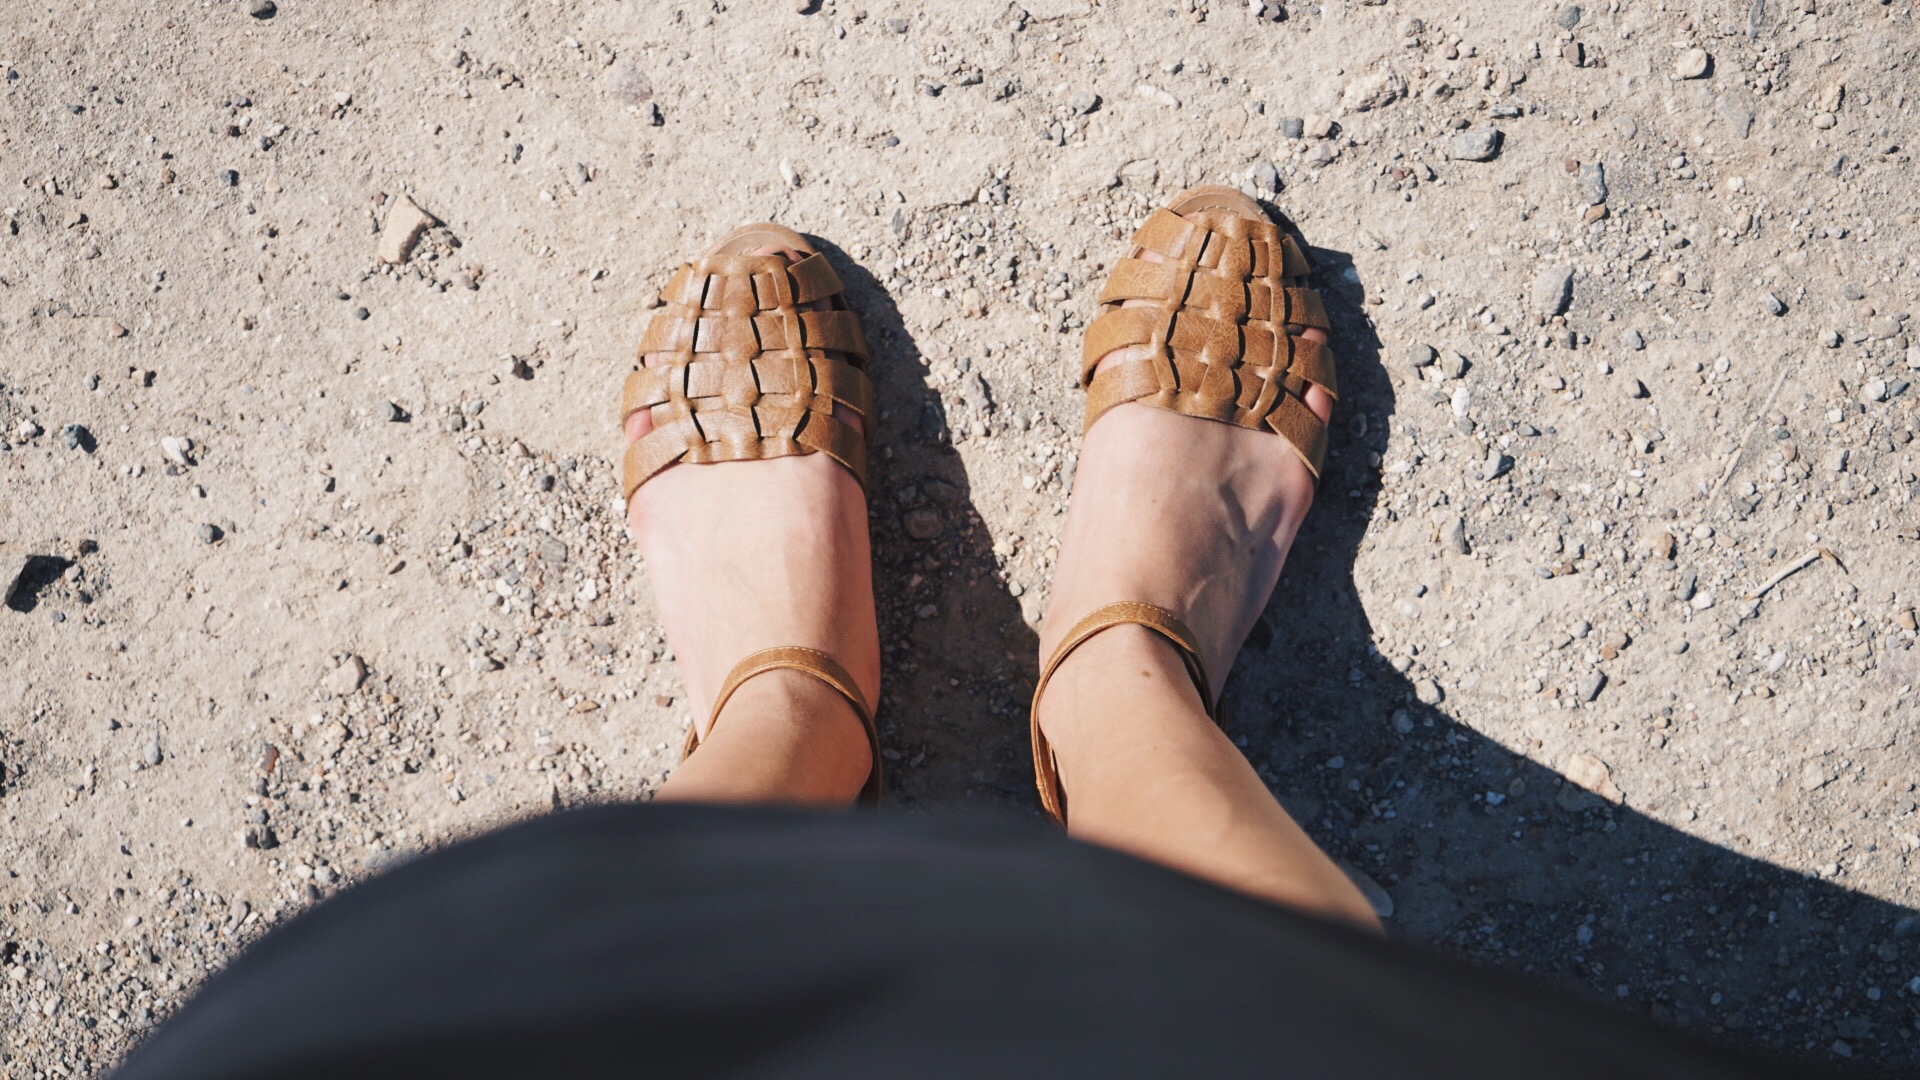 My feet before they melted into the sand...